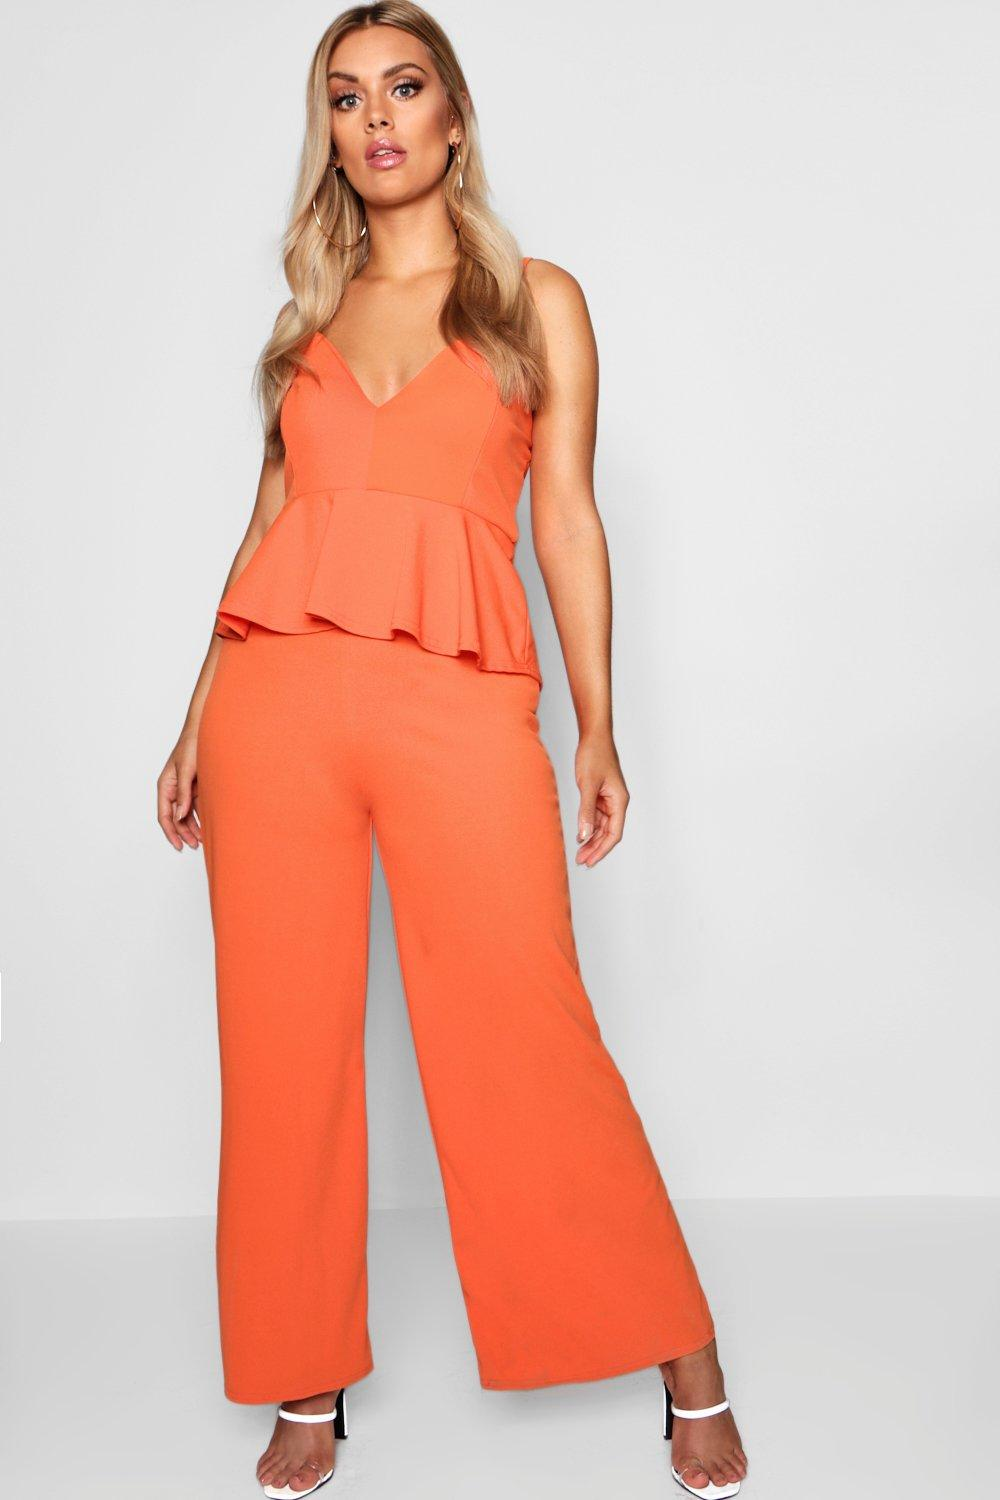 ed91208ccb5 Details about Boohoo Womens Plus Strappy Peplum Jumpsuit in Orange size 18